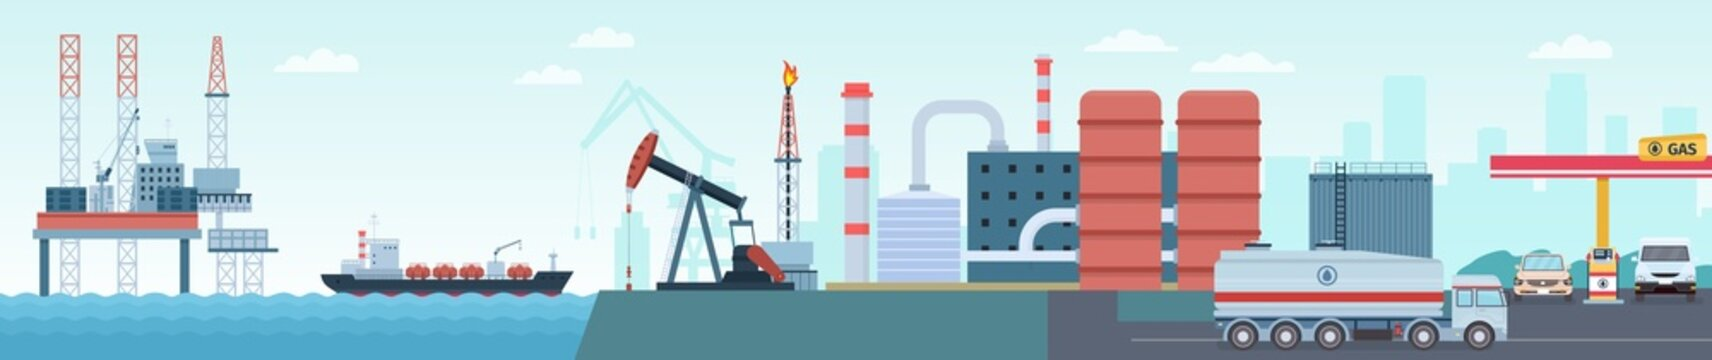 Oil petroleum industry extraction, production and transportation infographic. Sea rig, tanker, refinery plant and gas station vector concept